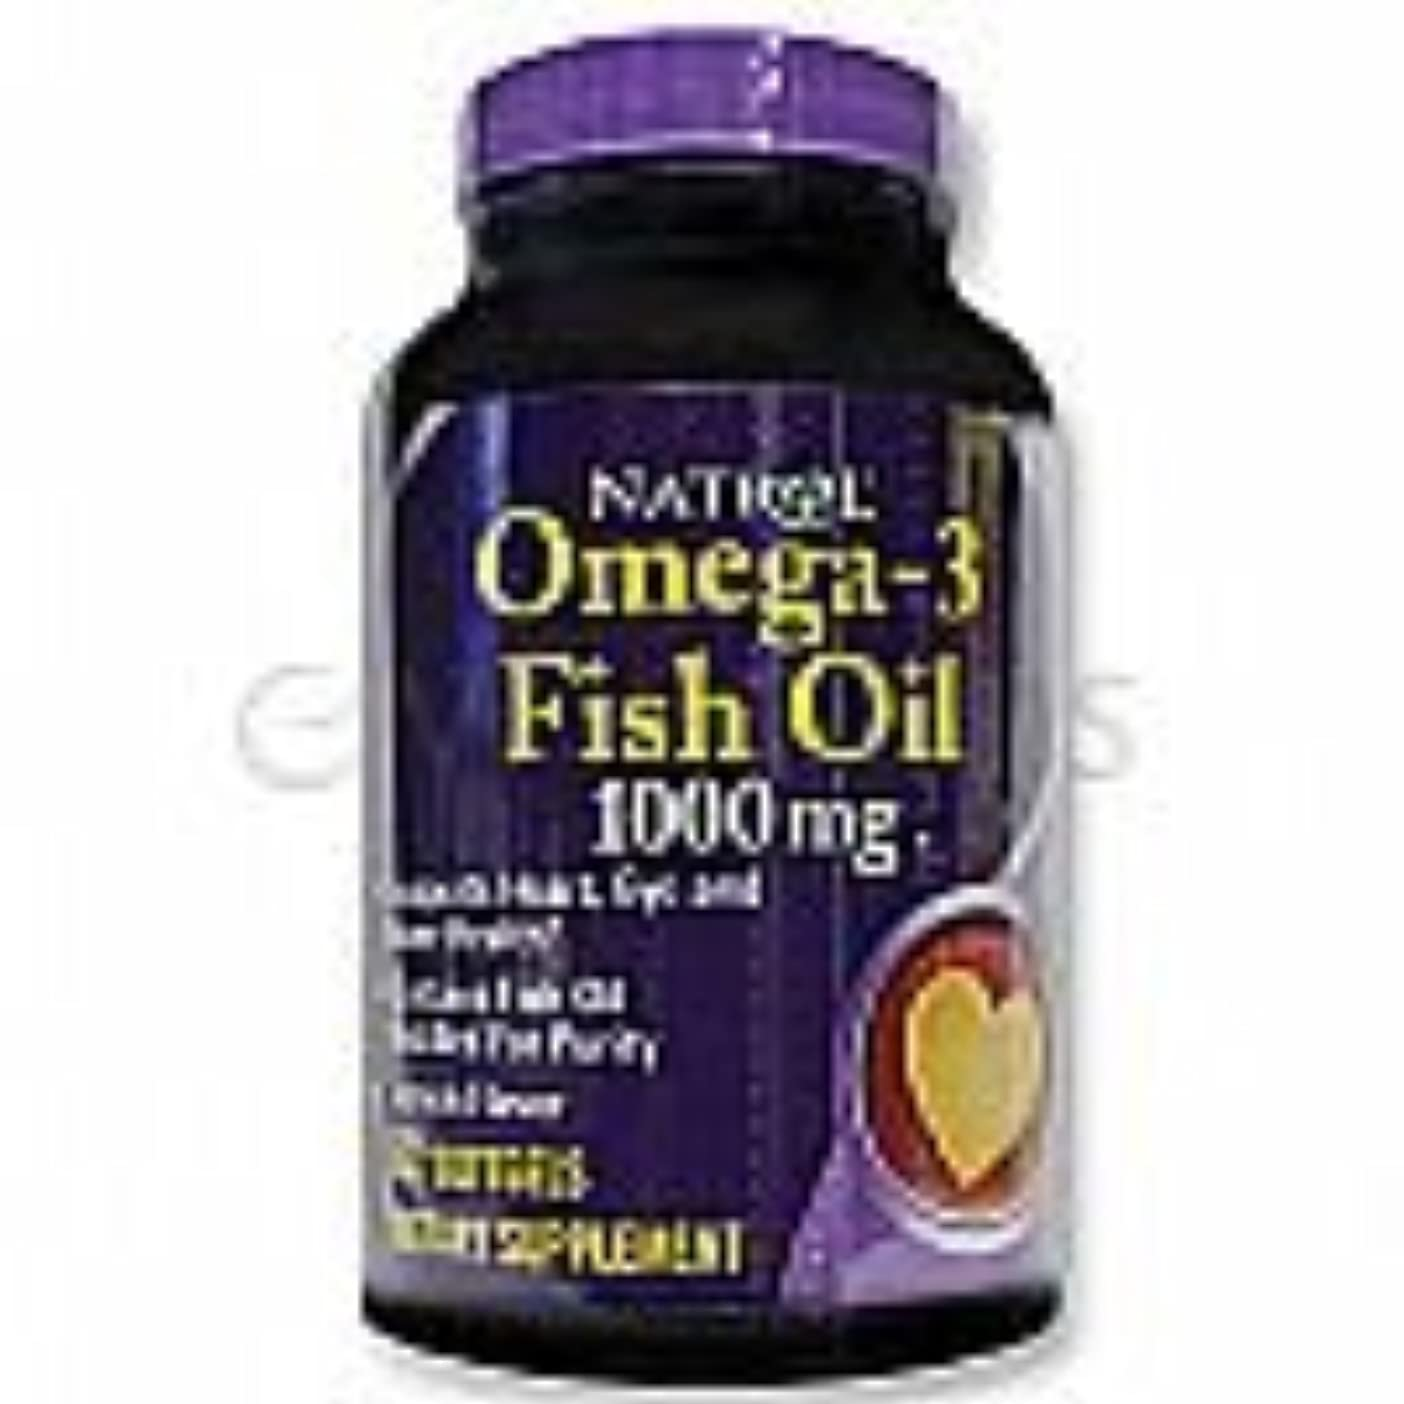 機械耳連続的Natrol Omega-3 Fish Oil 1,000 mg 60 Softgels Lemon [並行輸入品]